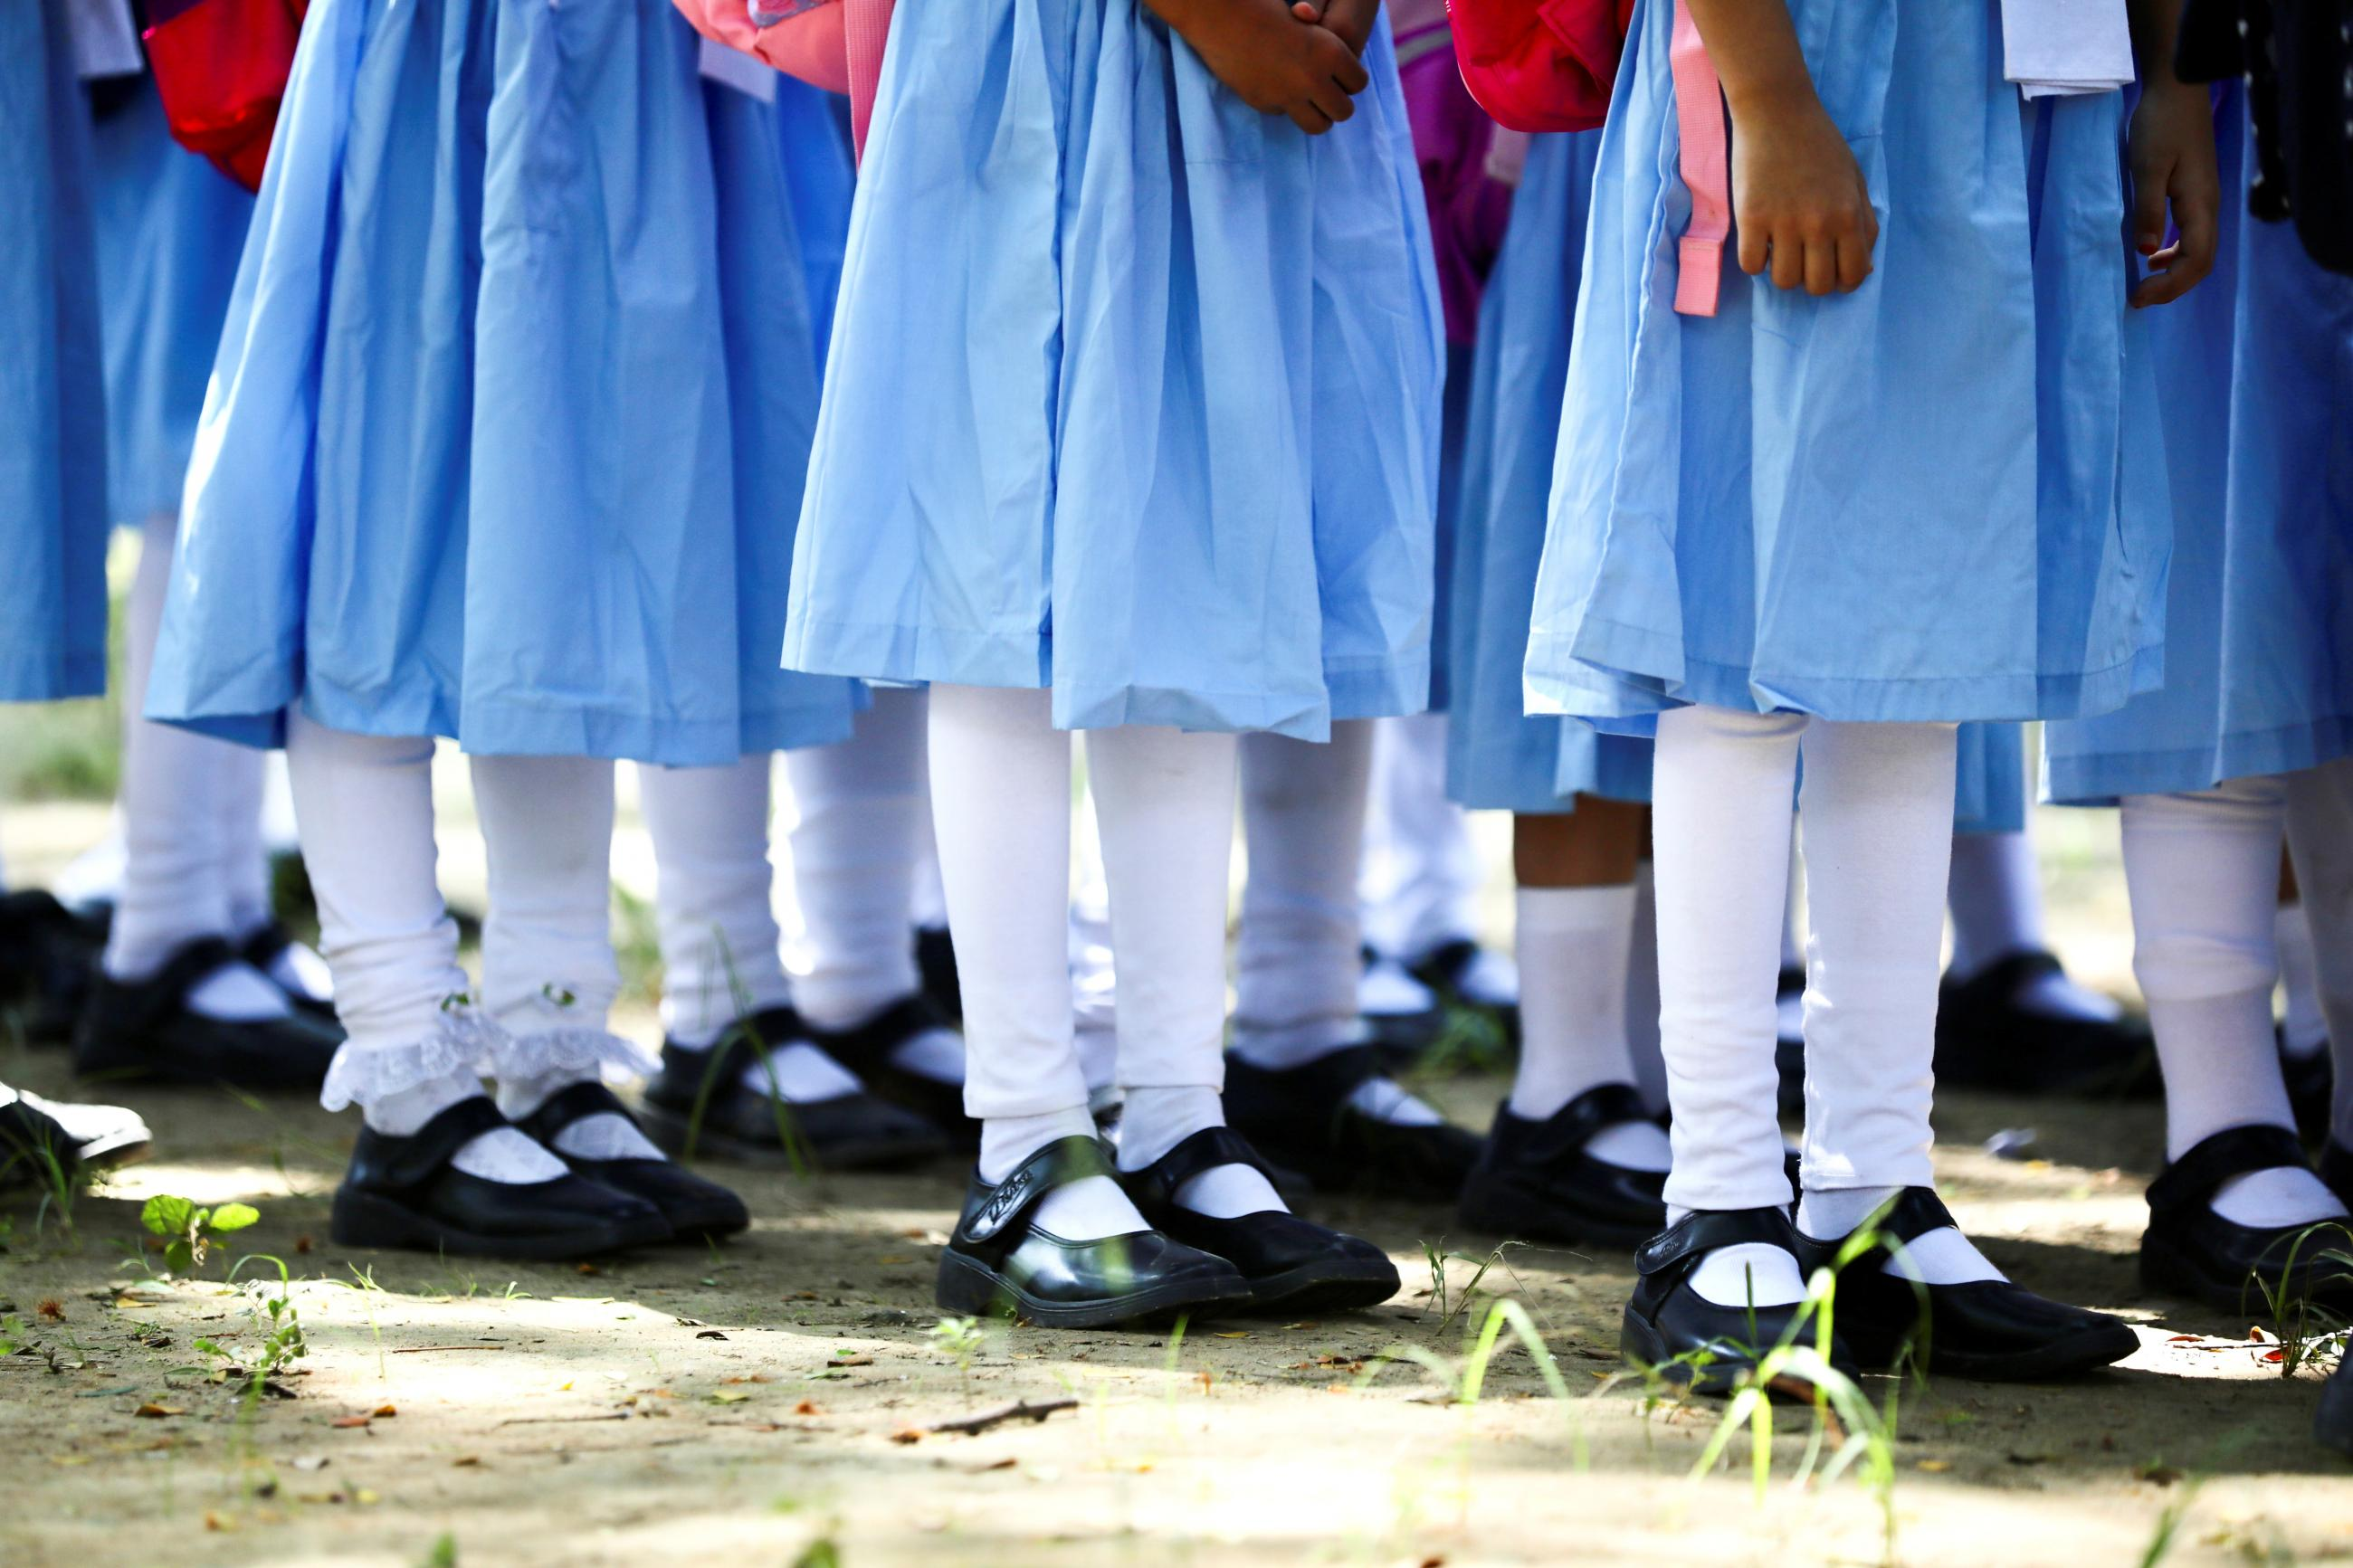 The legs and feet of students wearing blue dresses, white stockings, and black shoes can be seen standing in queues at the Viqarunnisa Noon School & College, in Dhaka, Bangladesh, September 12, 2021.